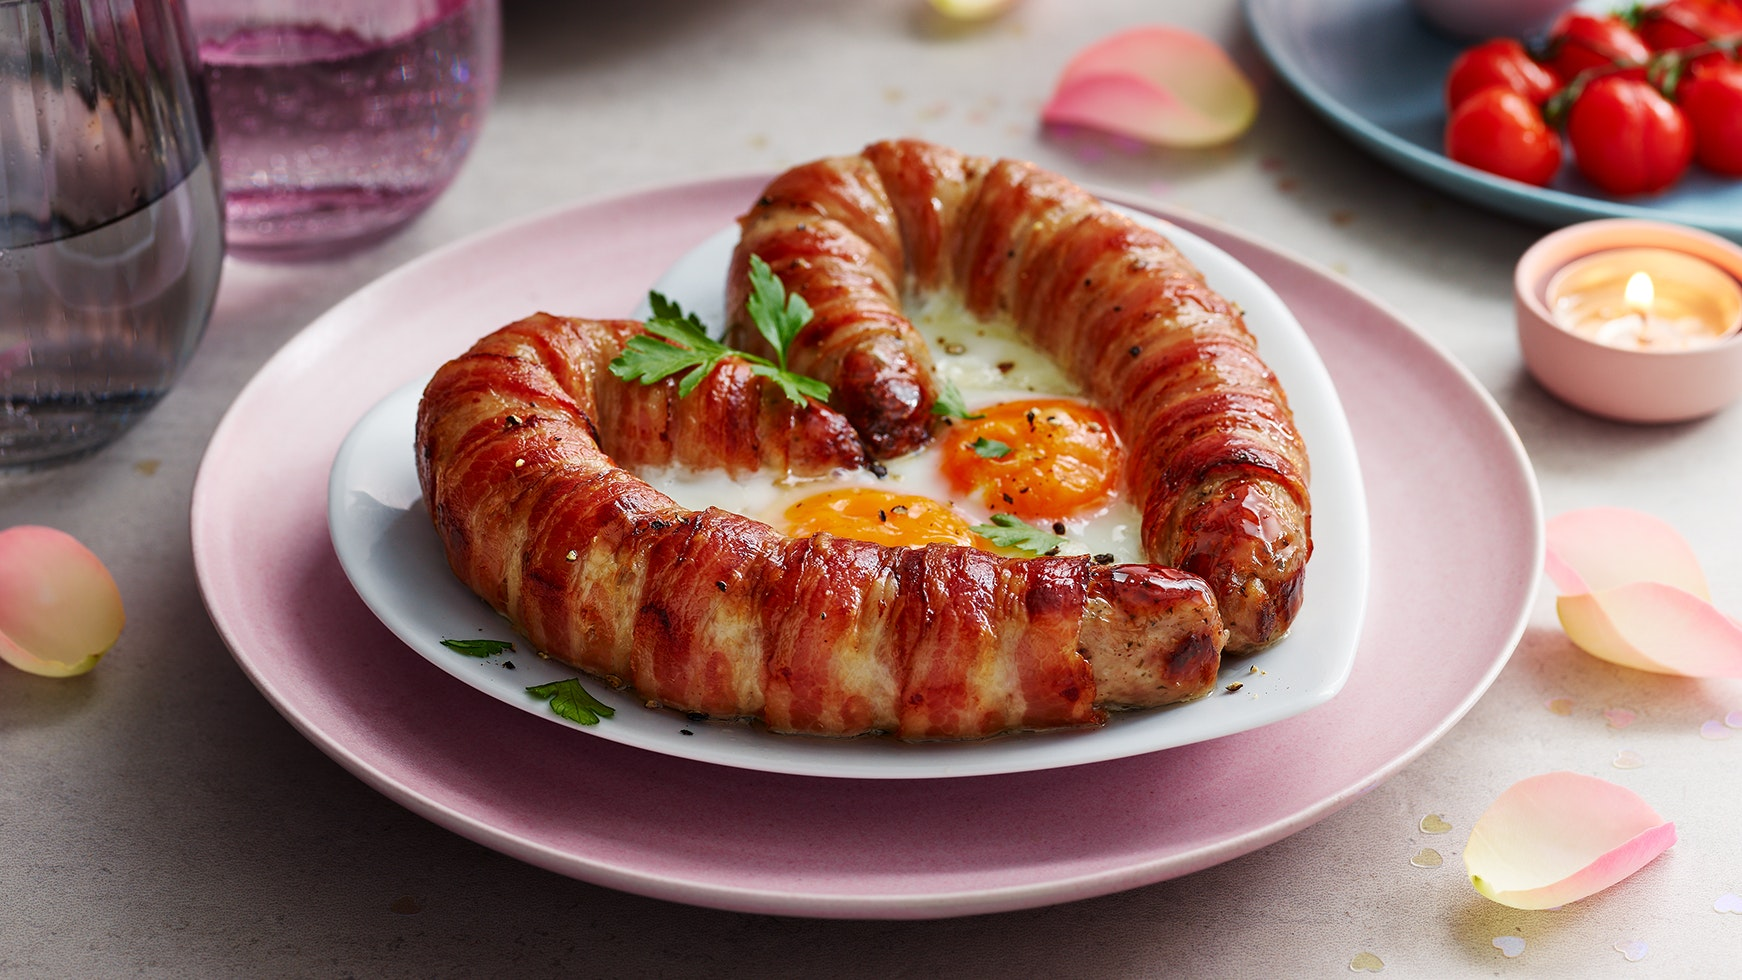 M&S launches 'love sausage' for Valentine's Day - and shoppers have hit the giggles